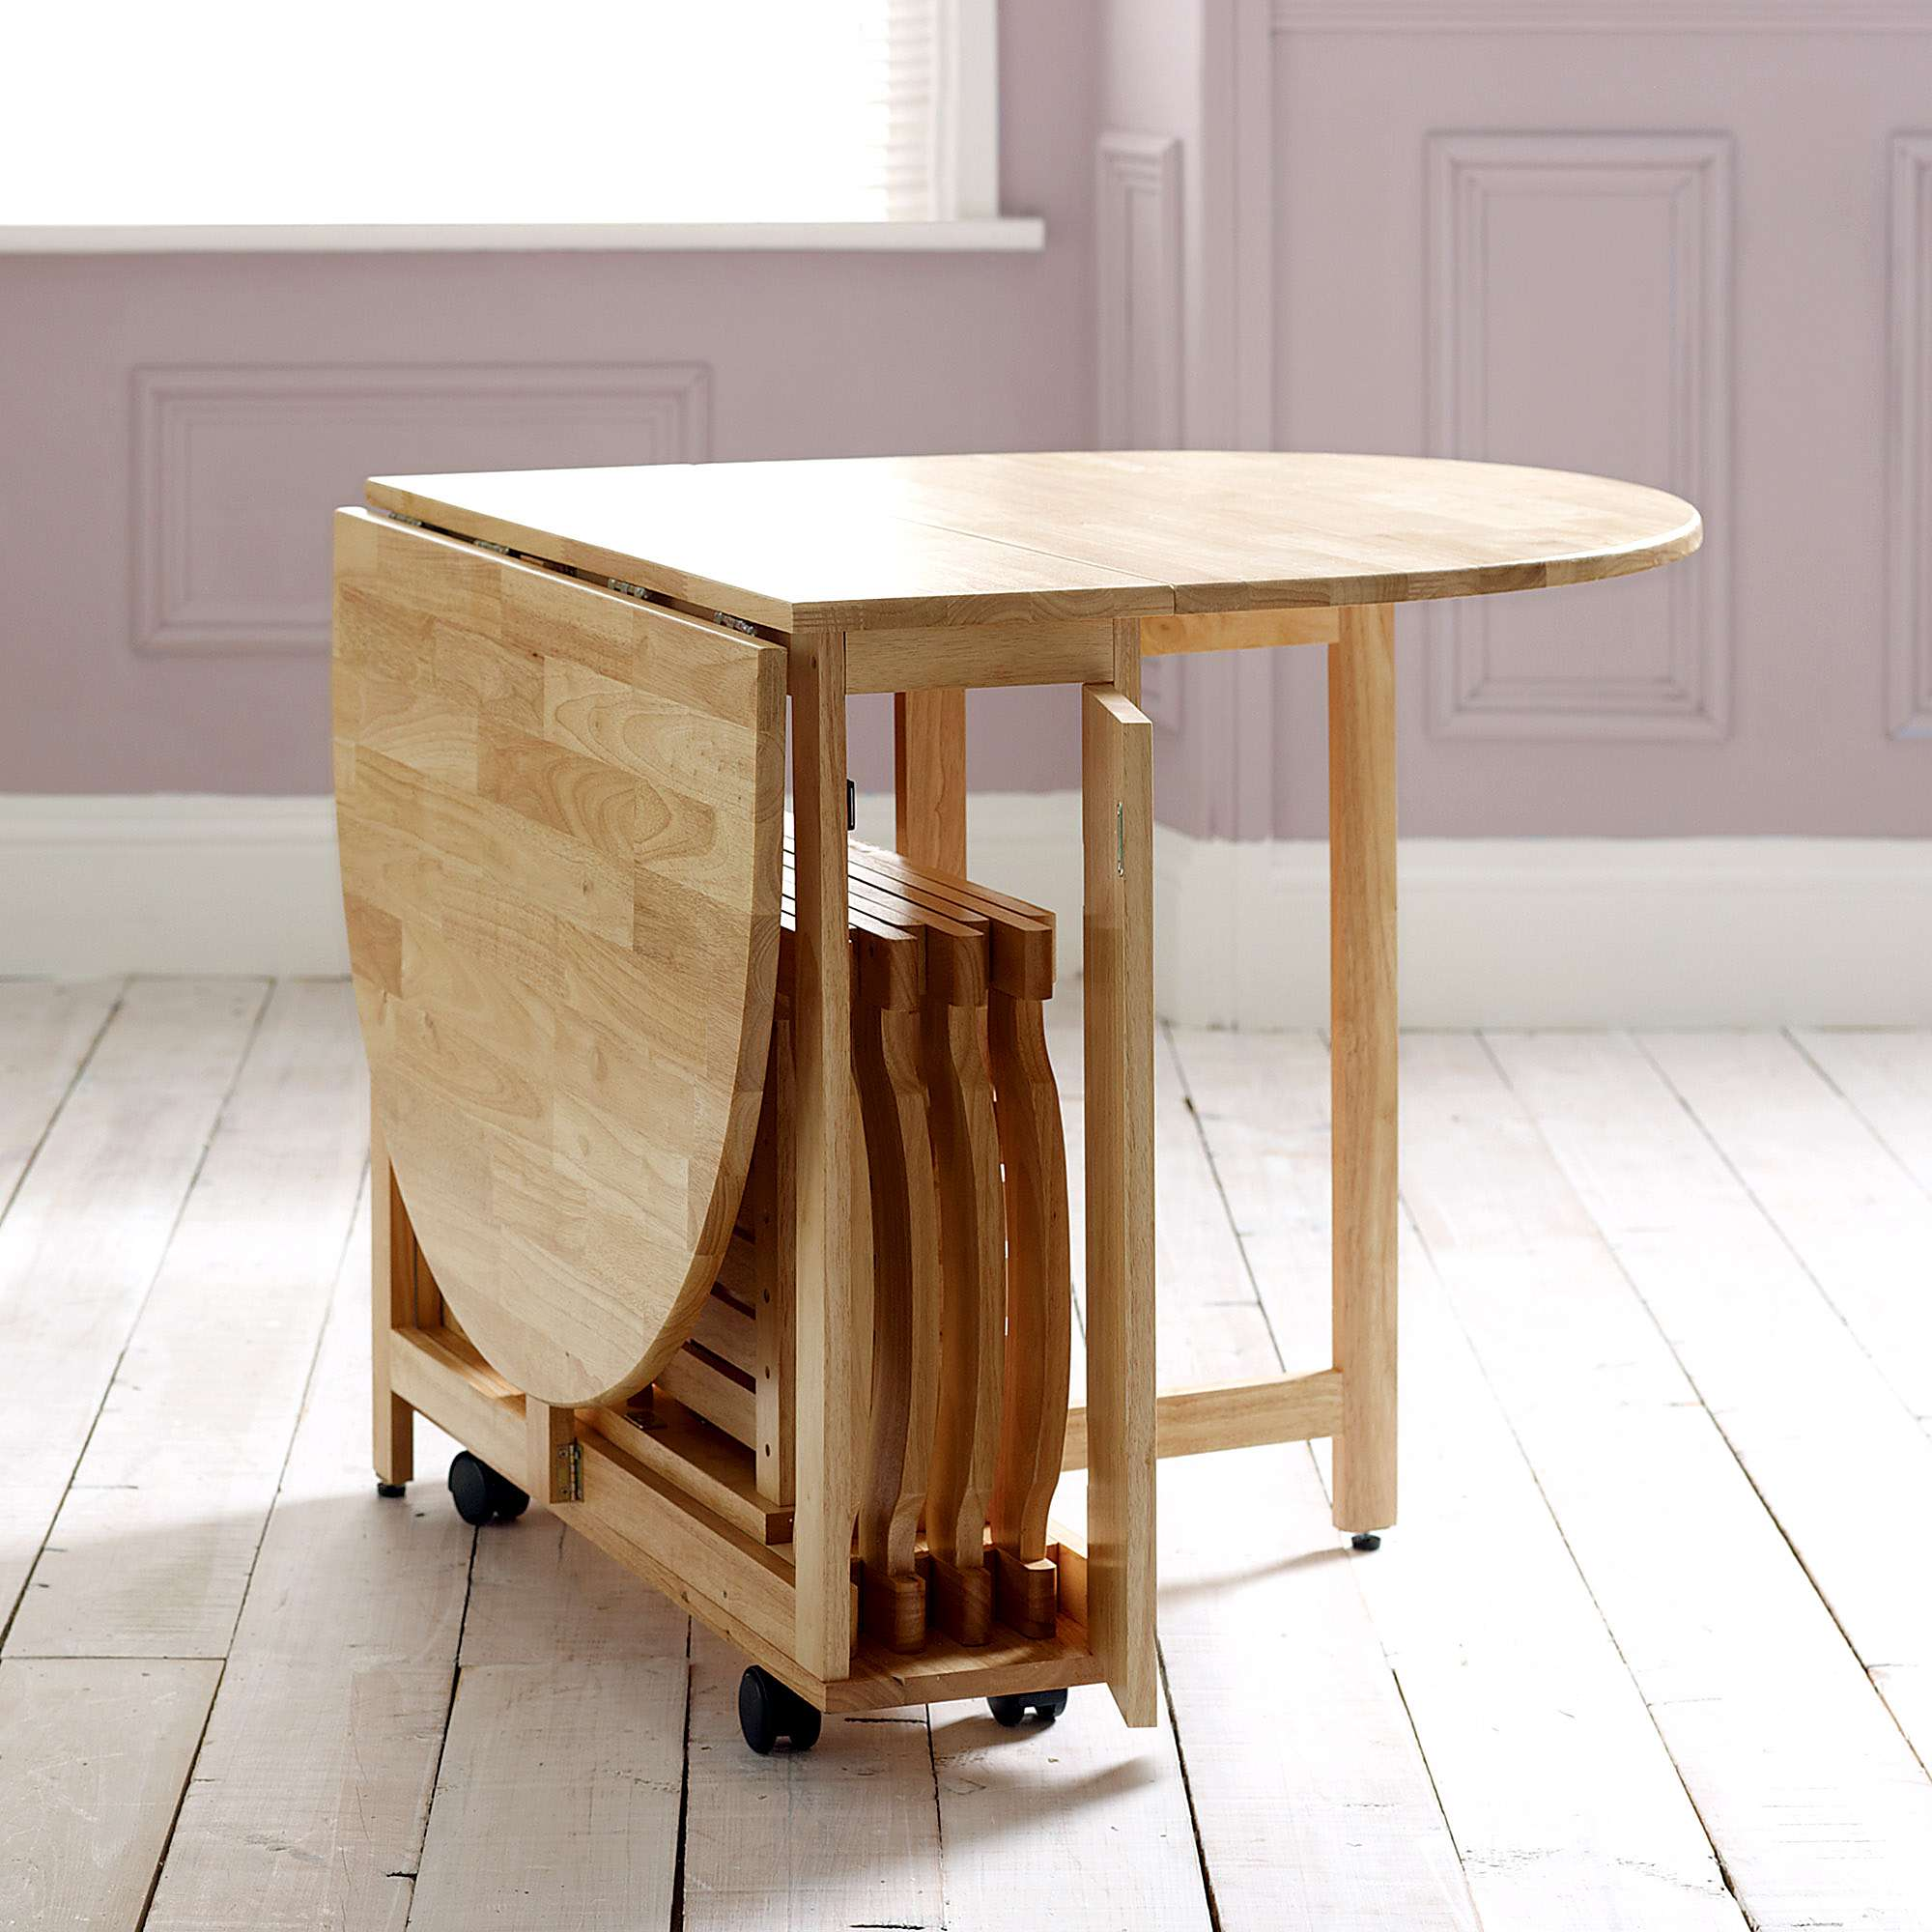 Choose a folding dining table for a small space adorable home - Foldable dining tables for small spaces model ...